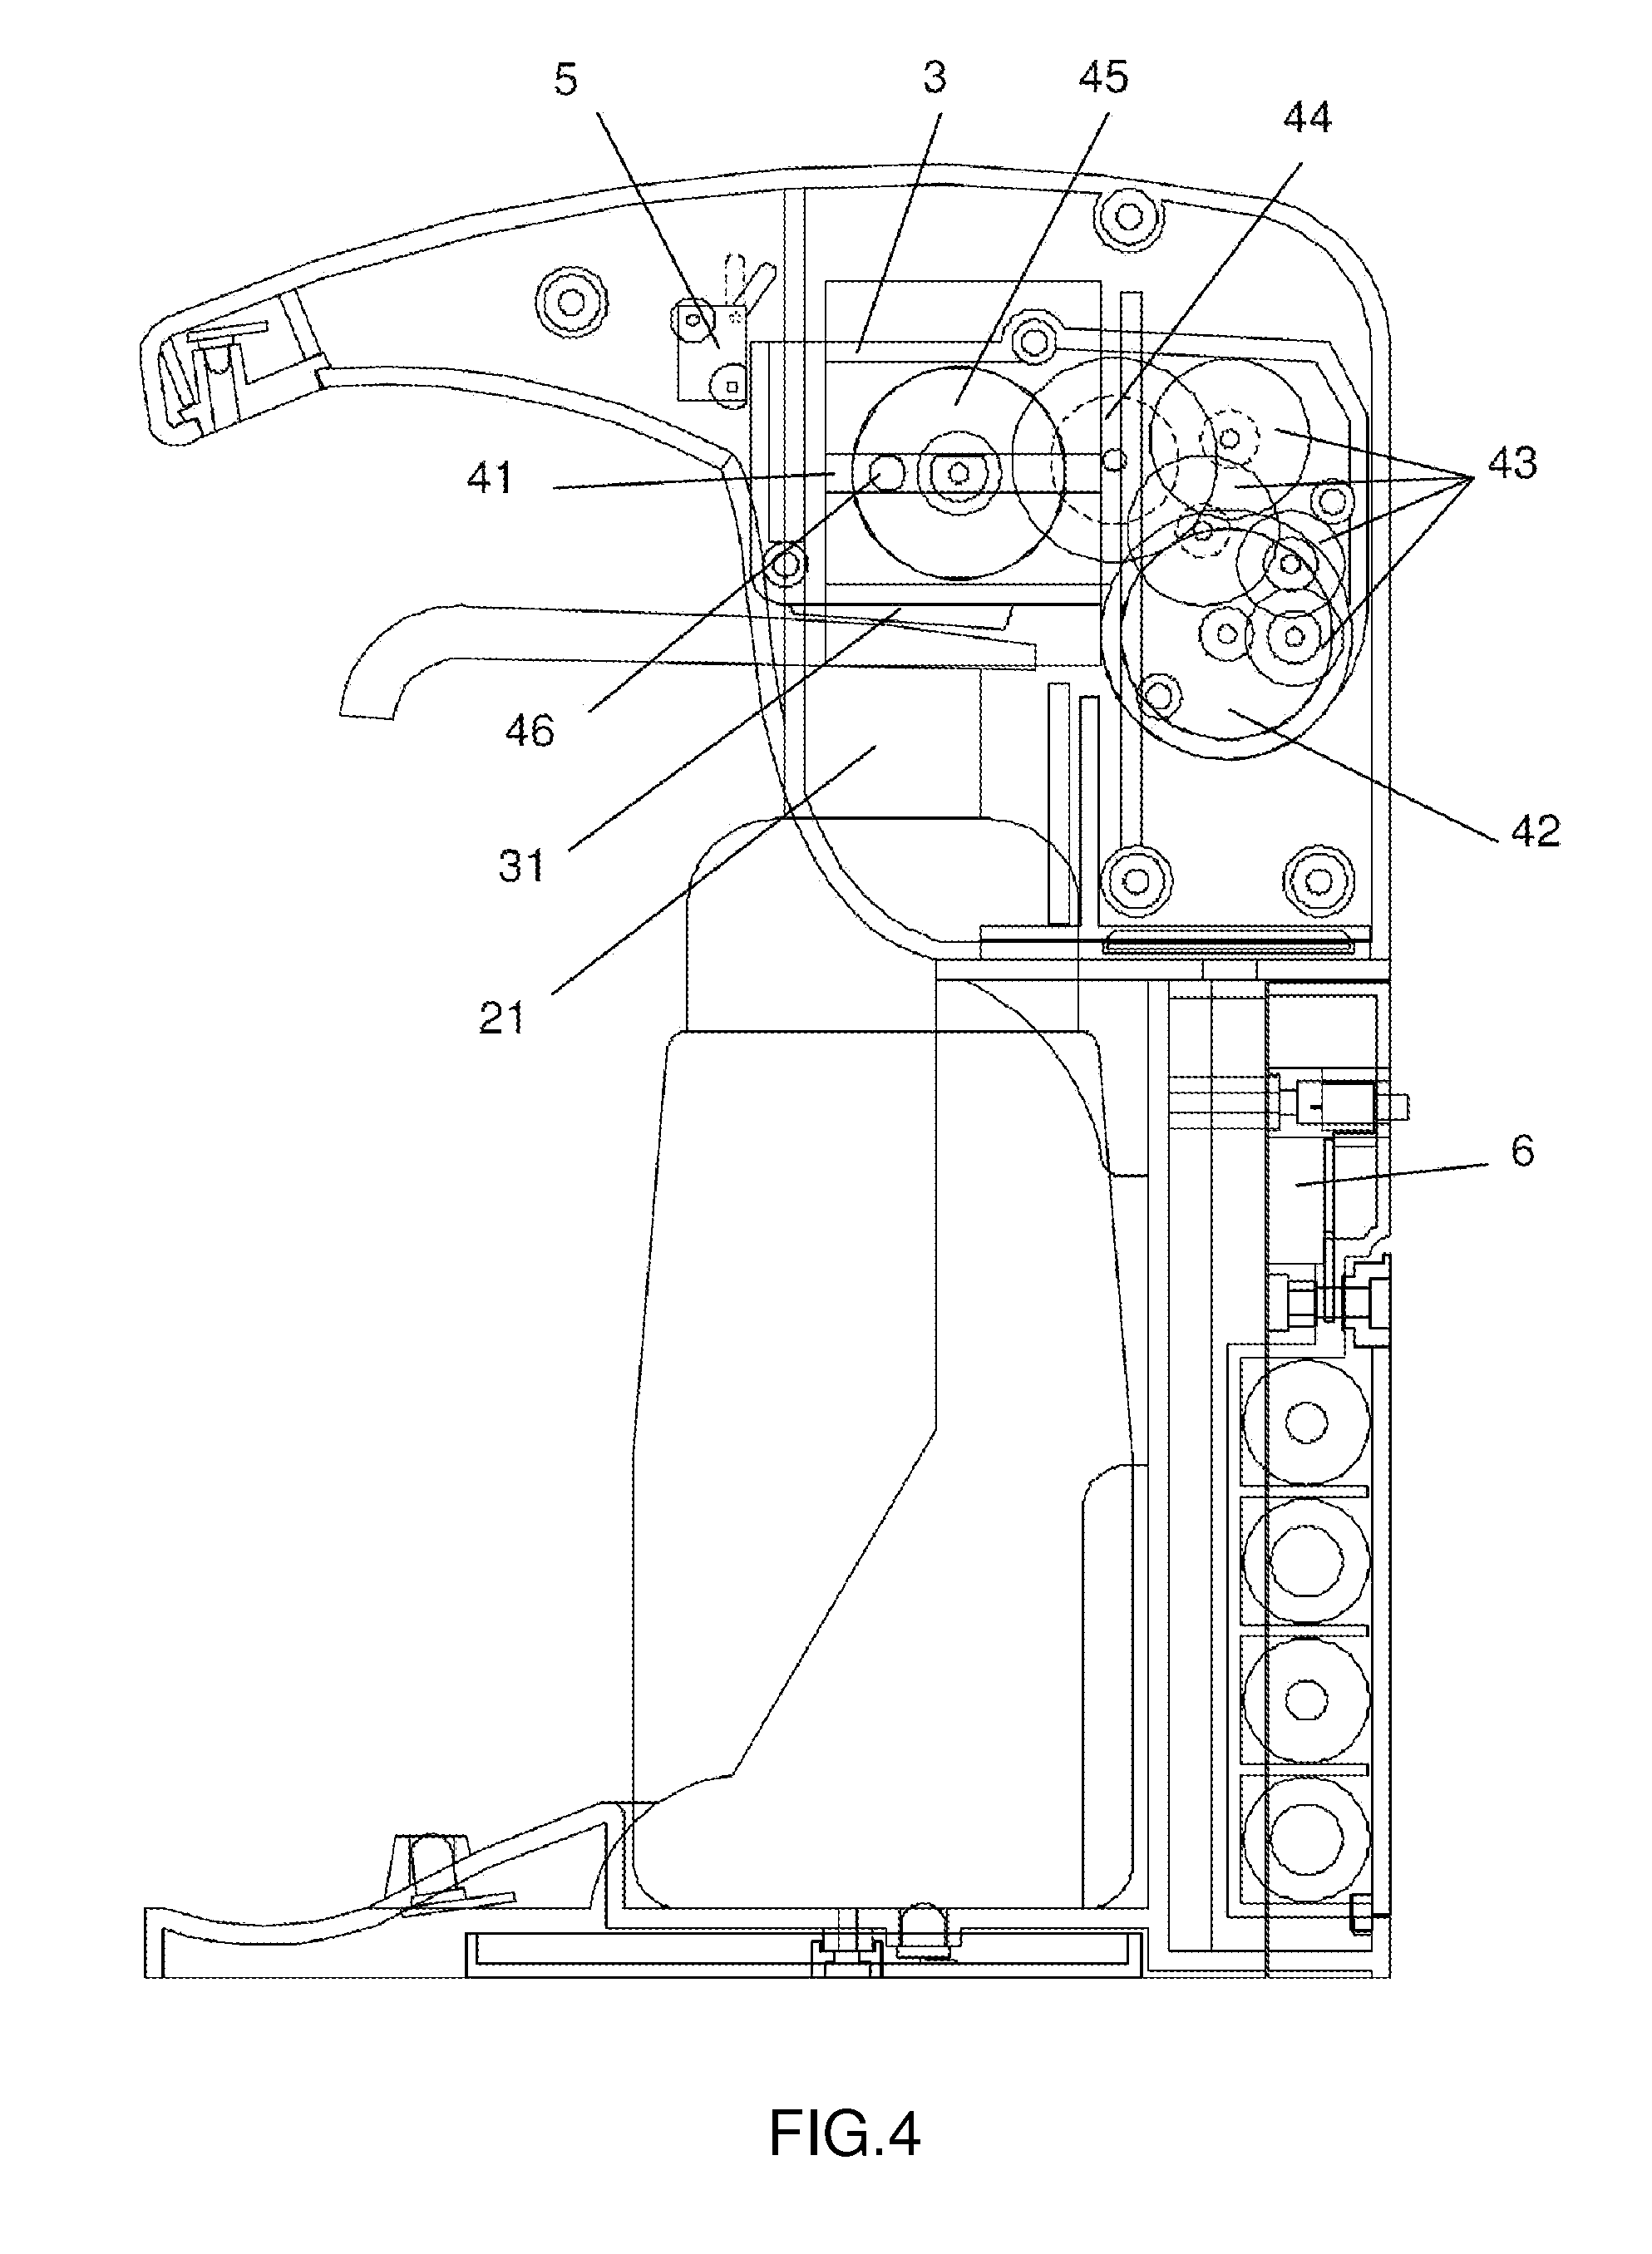 patent us20120111884 - automatic soap dispenser with notification function